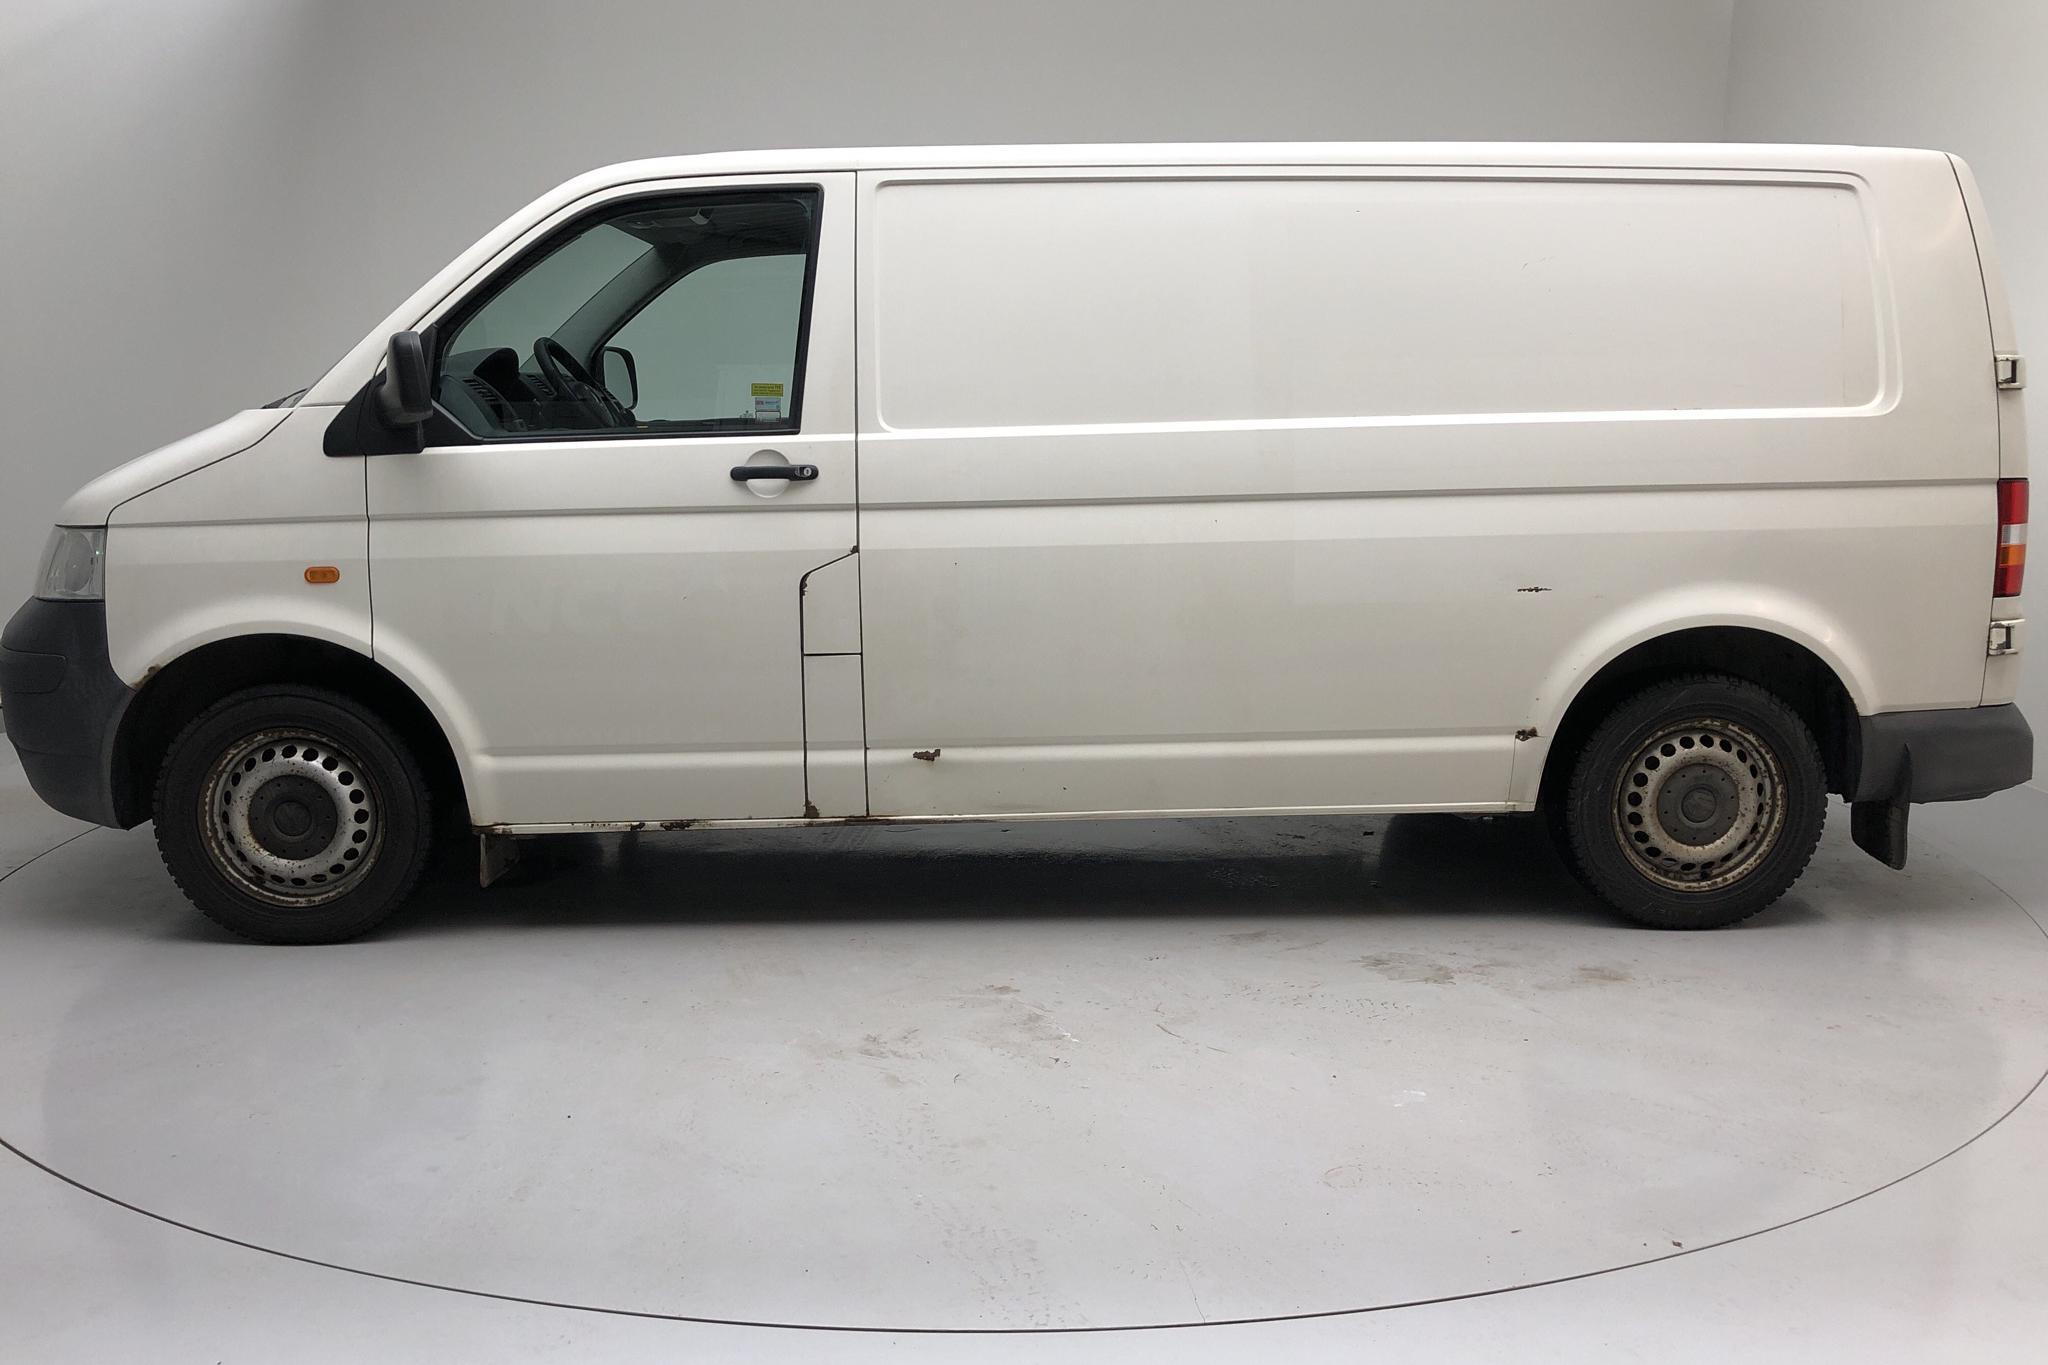 VW Transporter T5 2.5 TDI (130hk) - 150 800 km - Manual - white - 2008